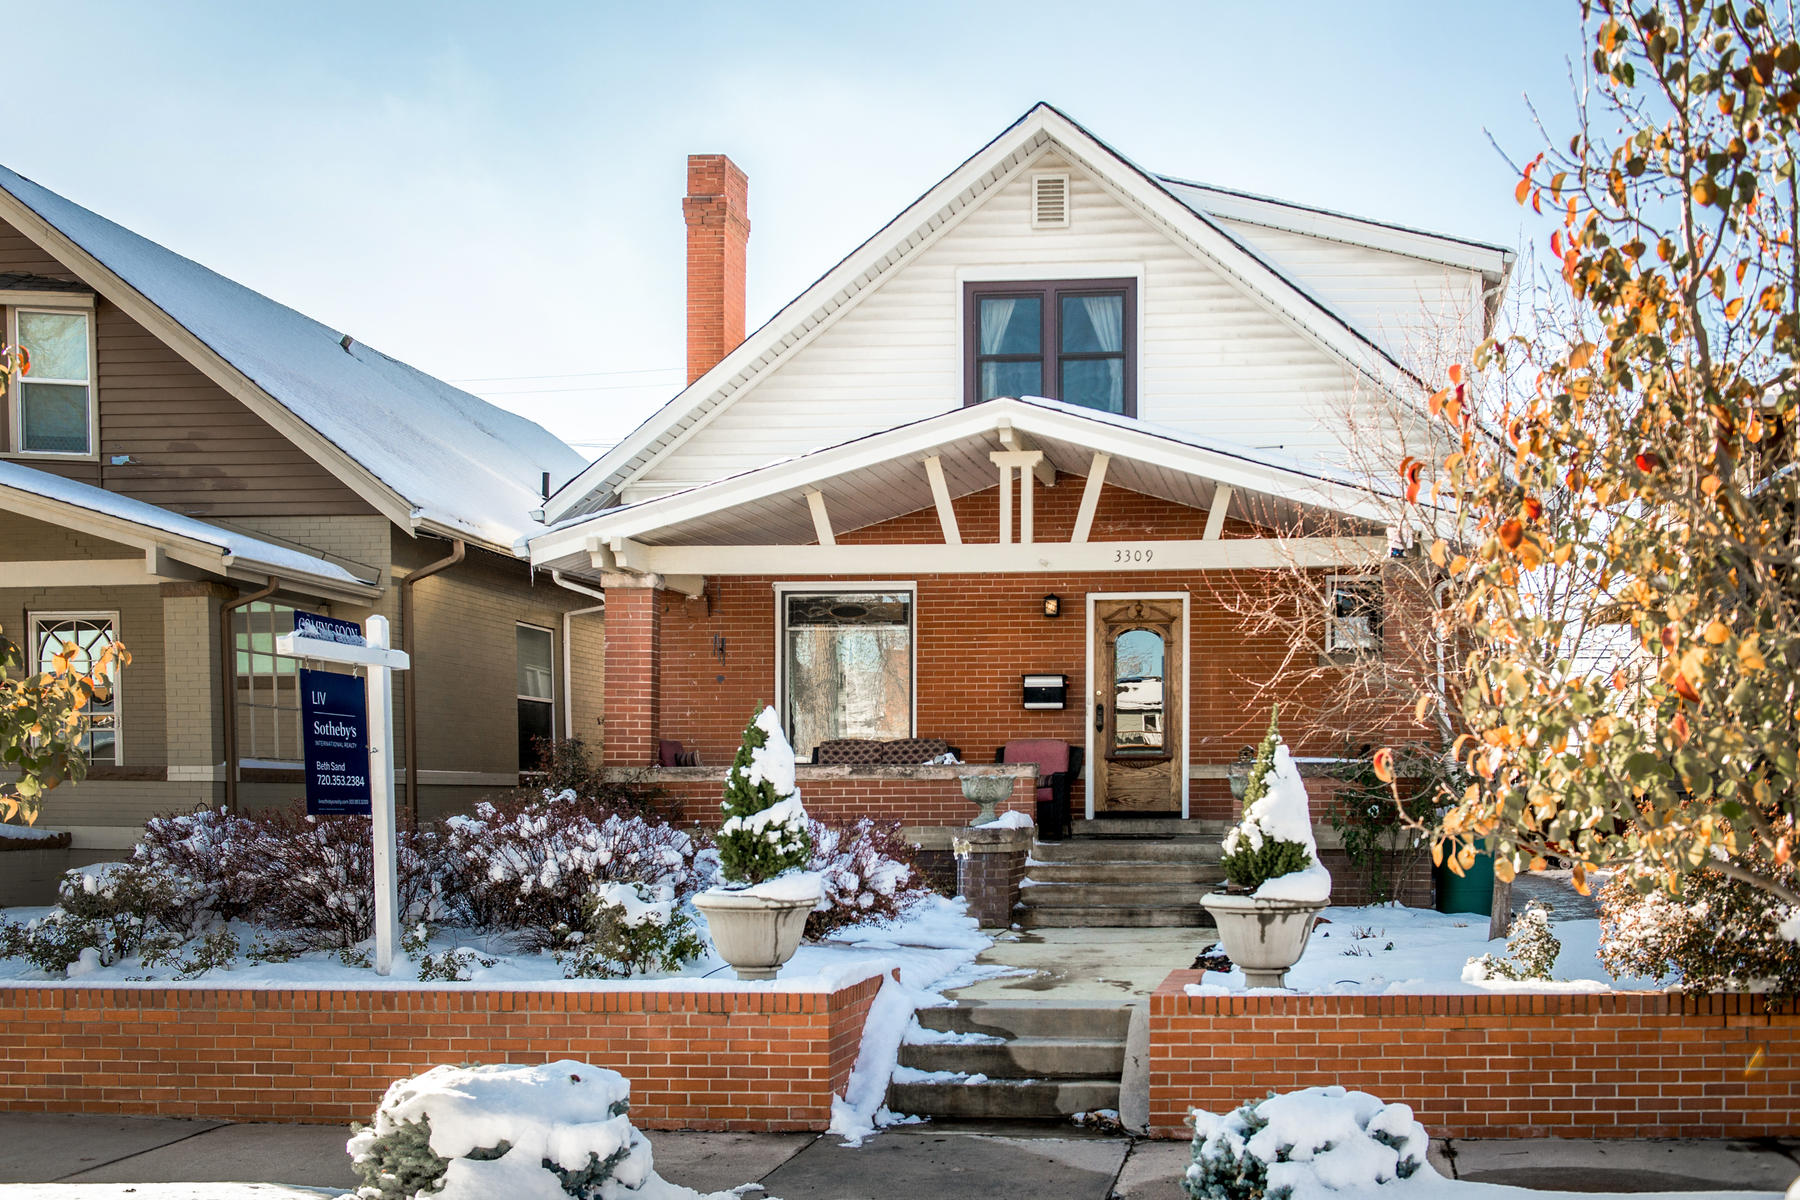 Single Family Home for Active at Lovingly Updated Craftsman-style Bungalow 3309 N Gaylord St Denver, Colorado 80205 United States